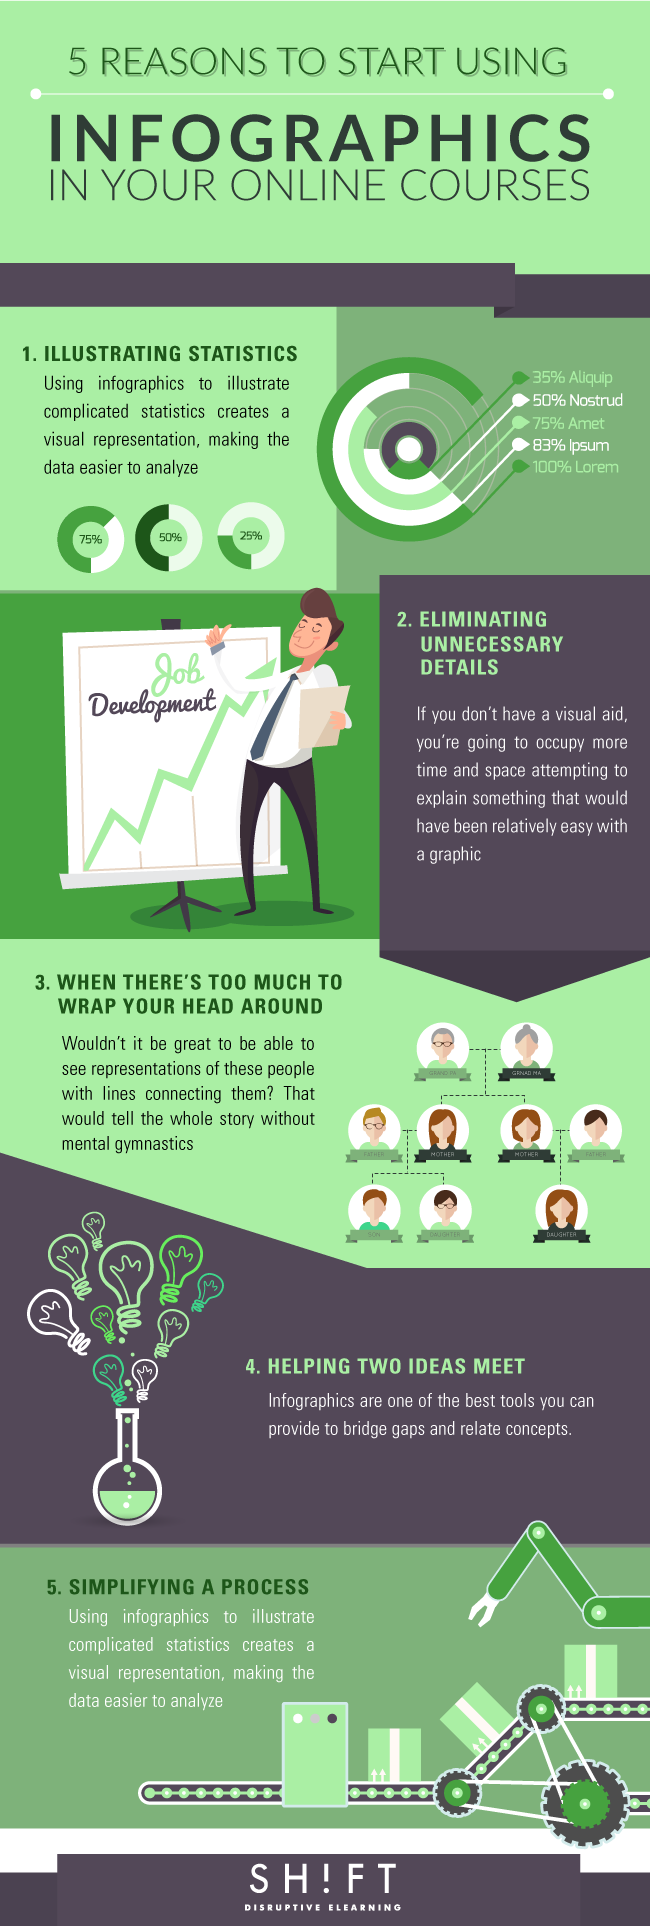 B5_5-Reasons-to-Start-Using-Infographics-in-Your-Online-Courses.png